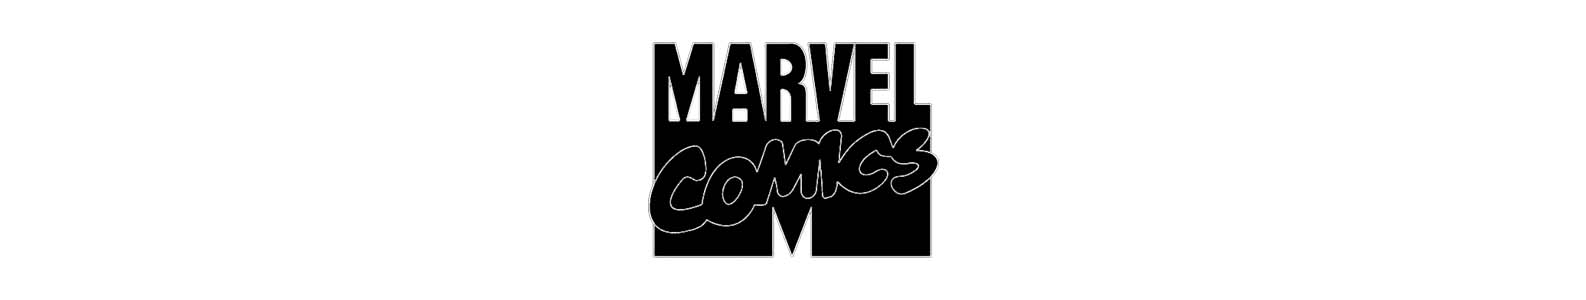 Marvel Comics brand header image